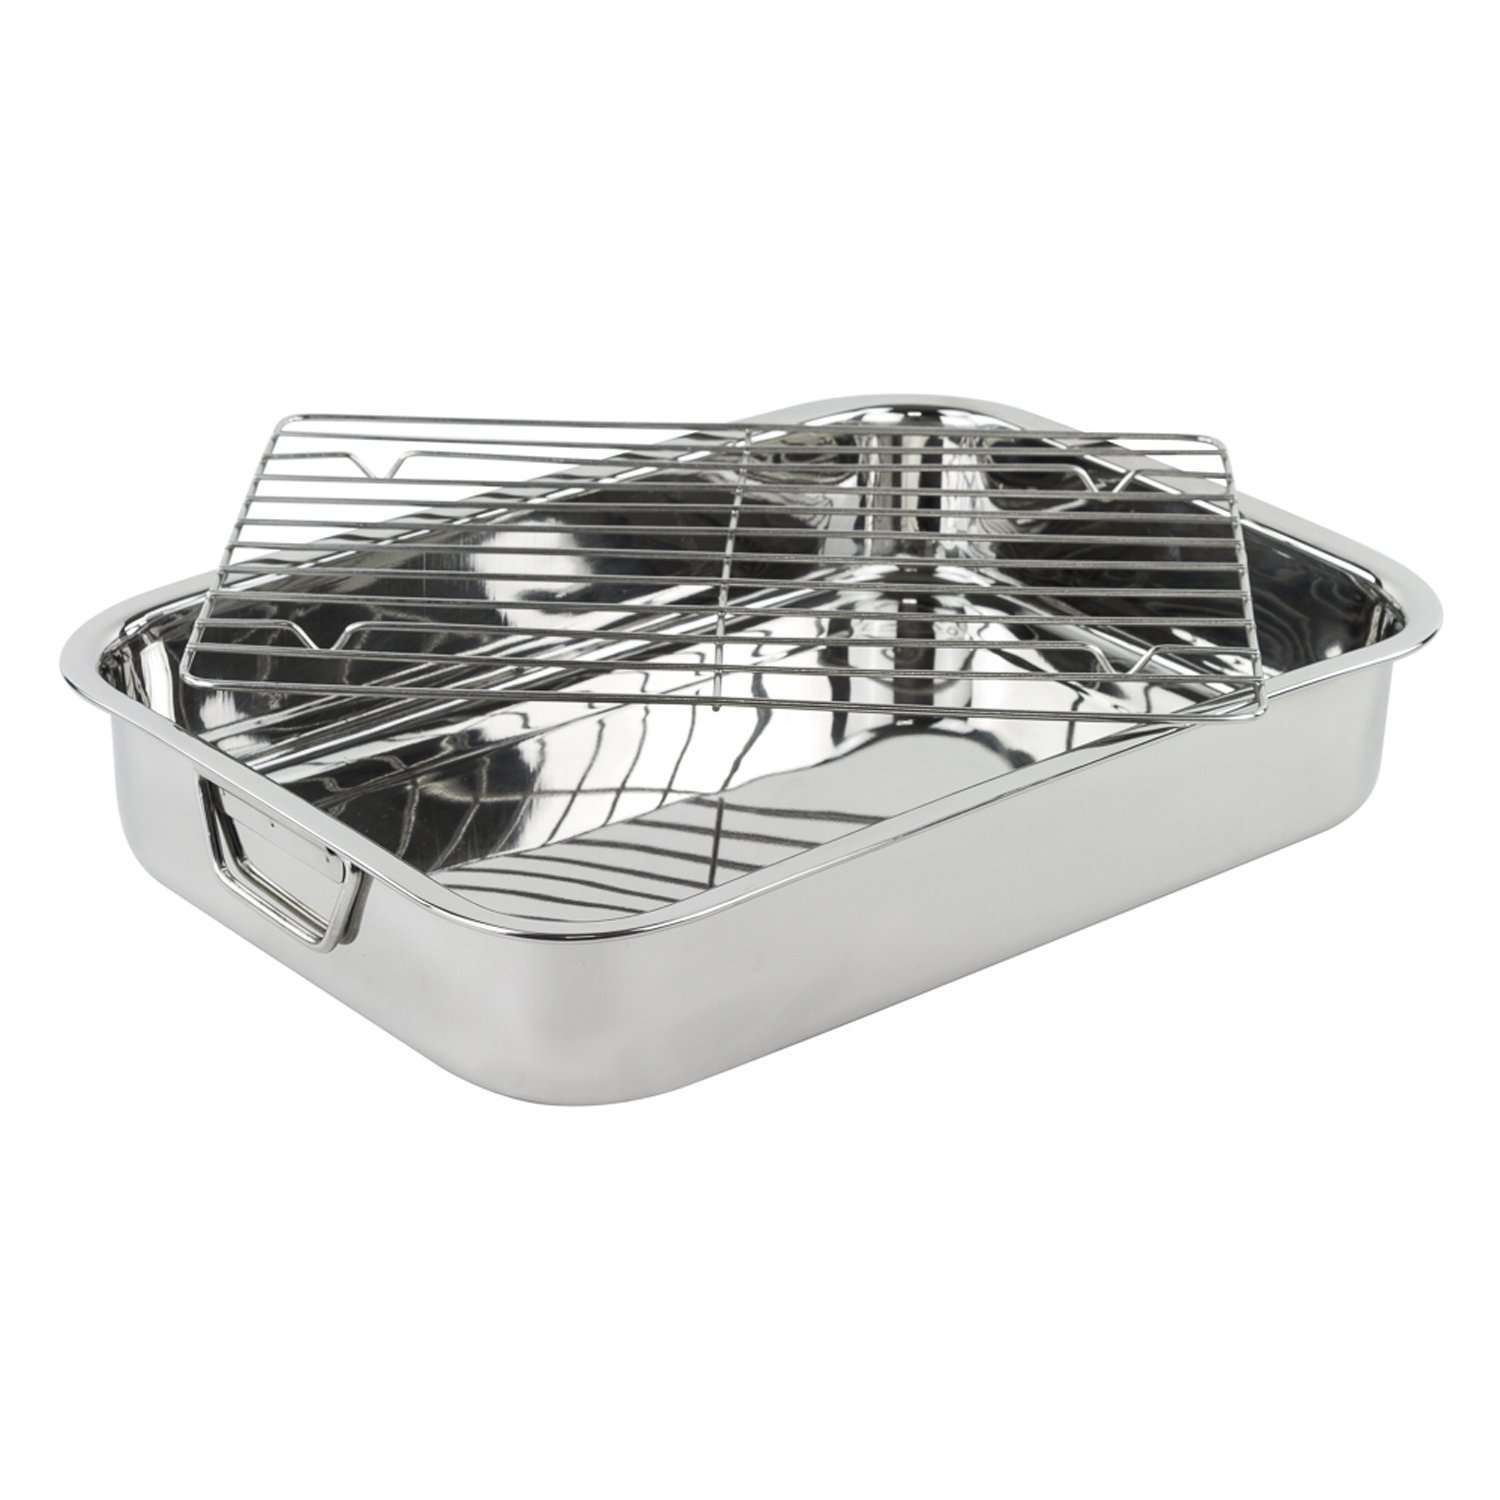 Stainless Steel Heavy Duty 16'' Lasagna/Roasting Pan with Rack by Imperial Home